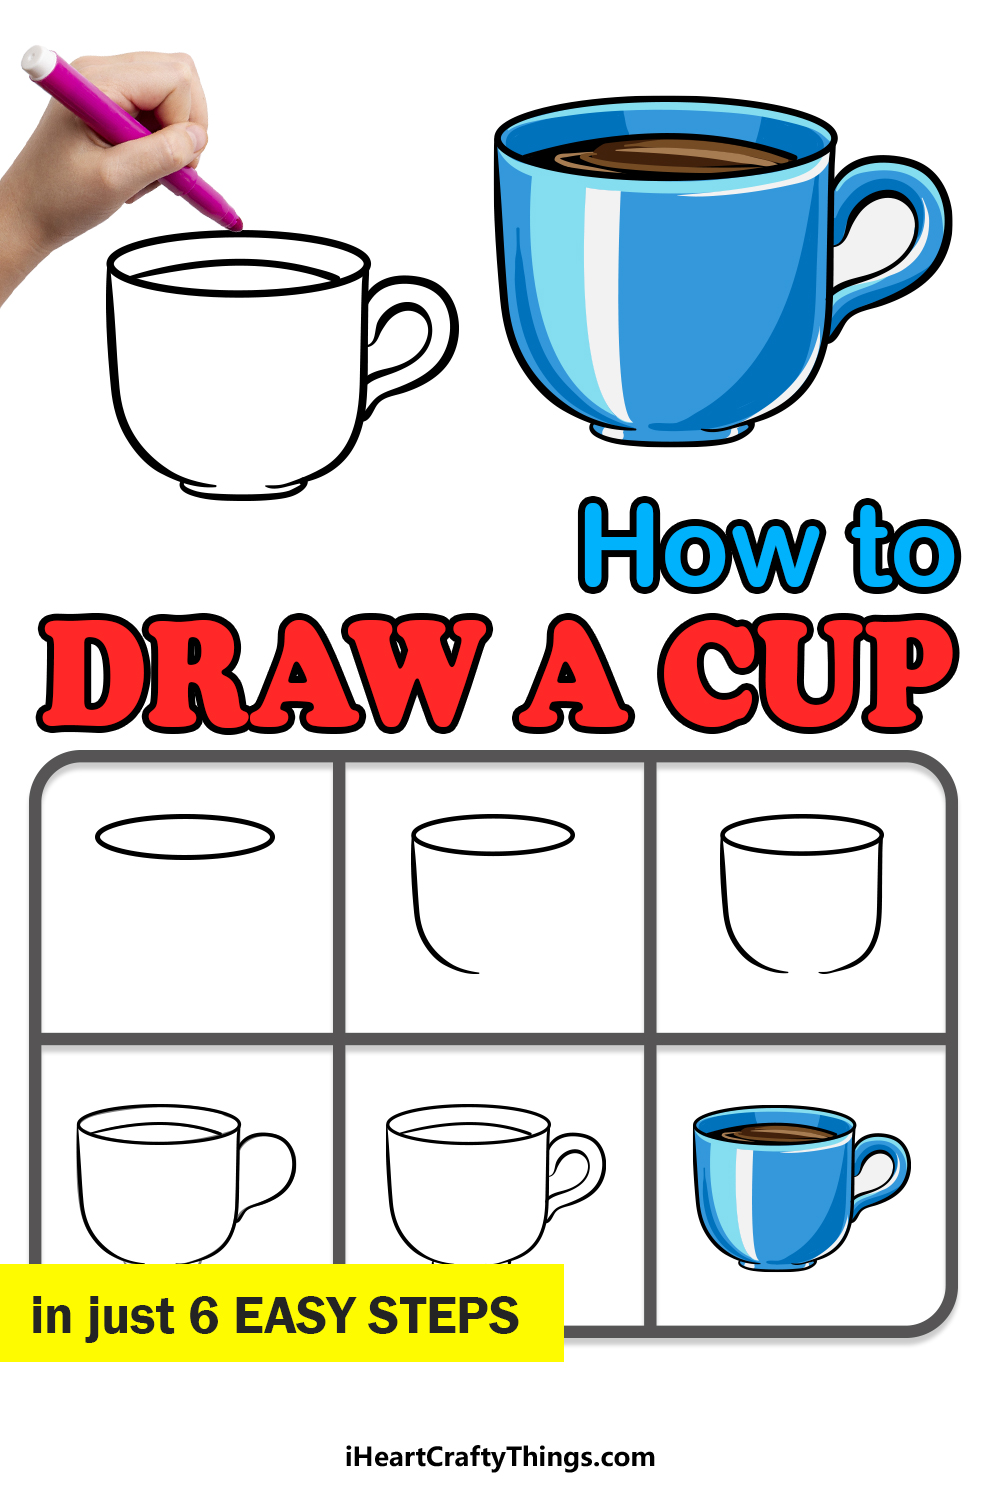 how to draw a cup in 6 easy steps